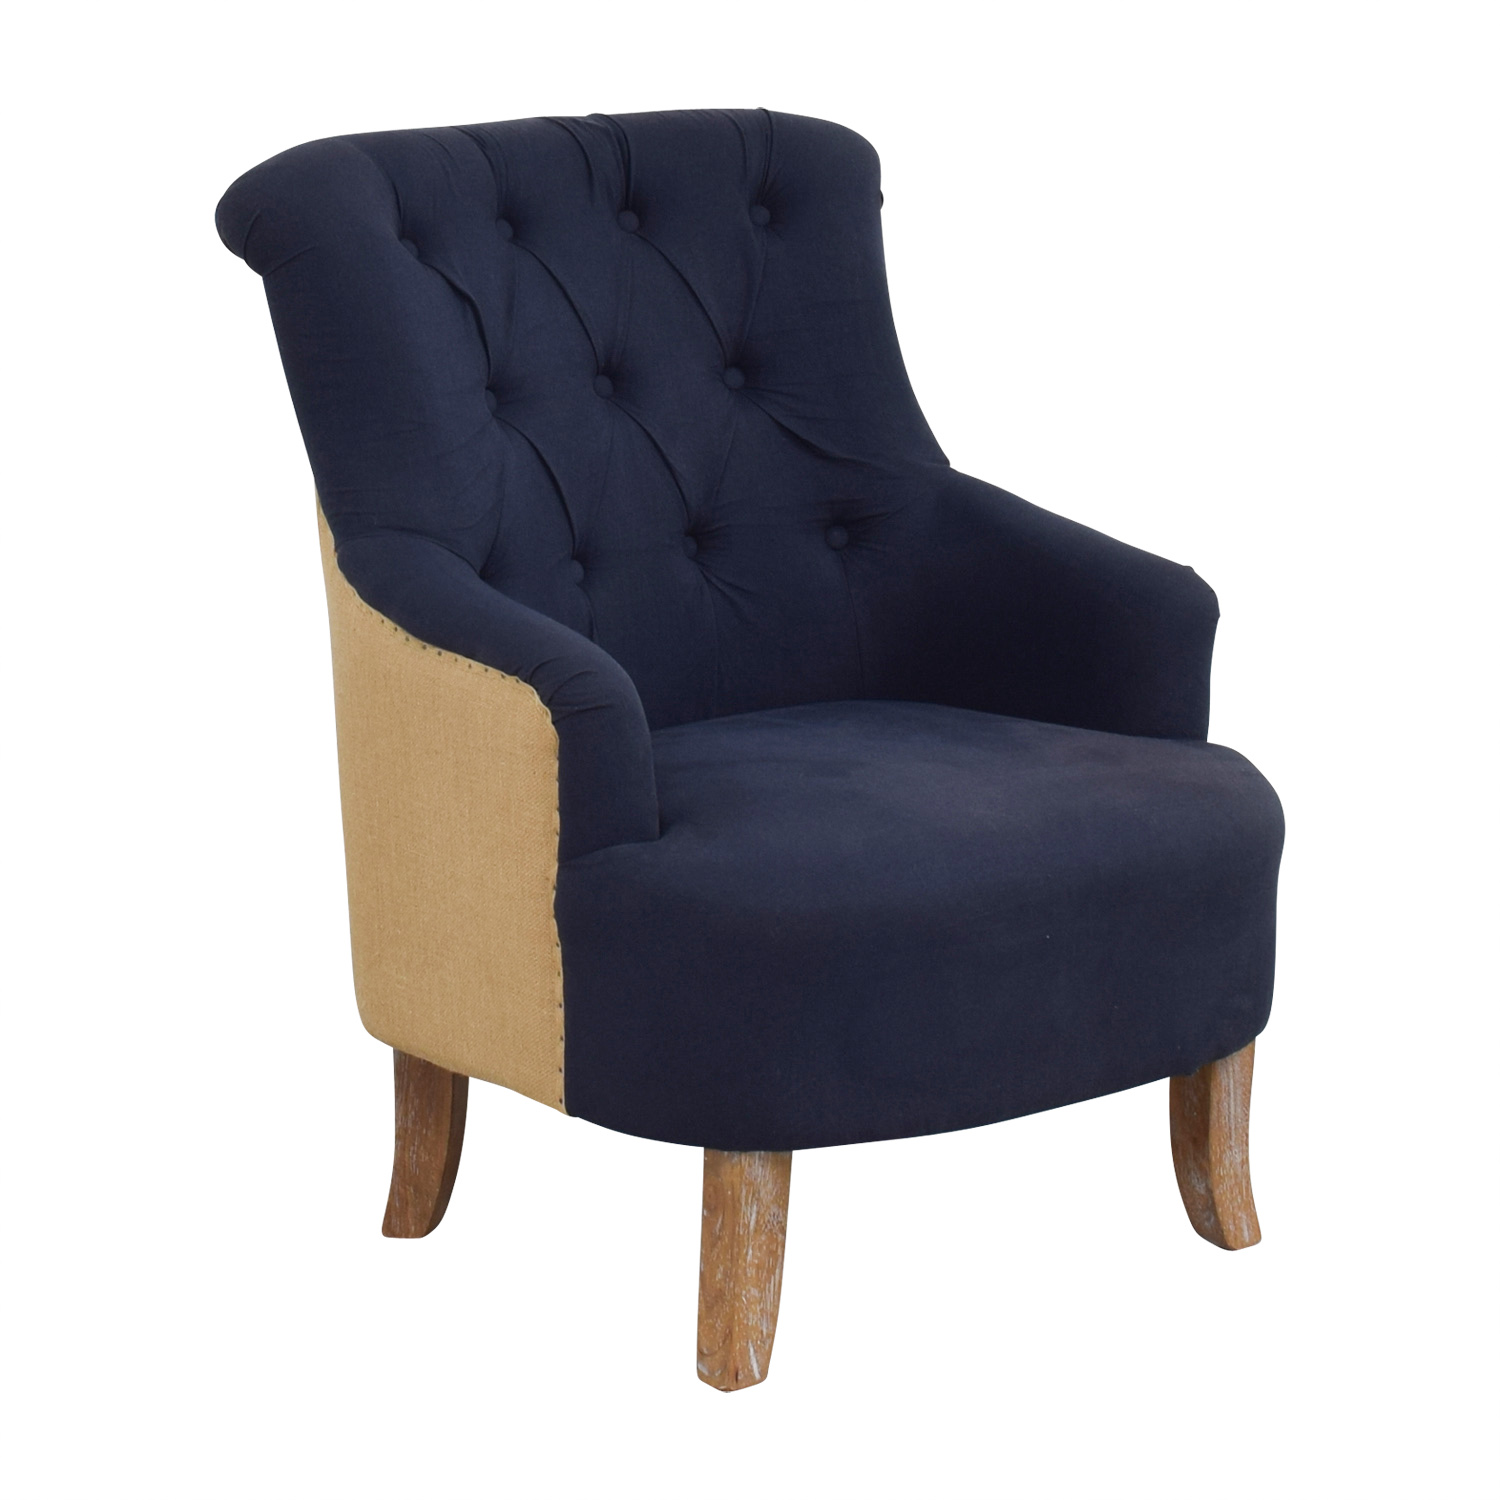 61% OFF   Pier 1 Pier 1 Imports Blue And Tan Tufted Armchair / Chairs